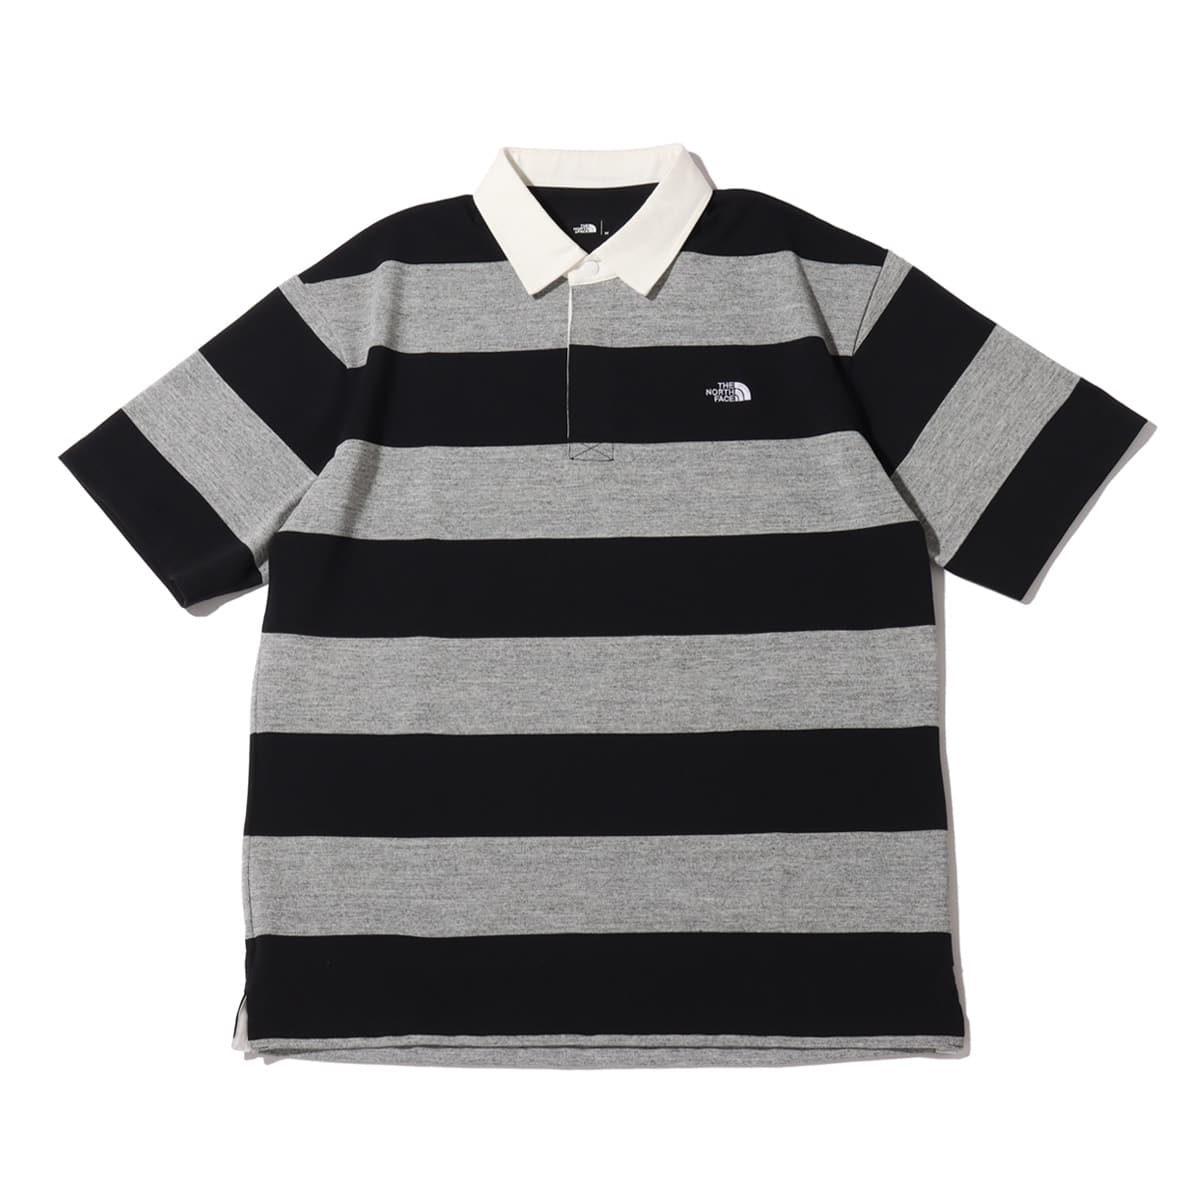 THE NORTH FACE S/S RUGBY POLO BLACK/MIX GRAY 21SS-I_photo_large